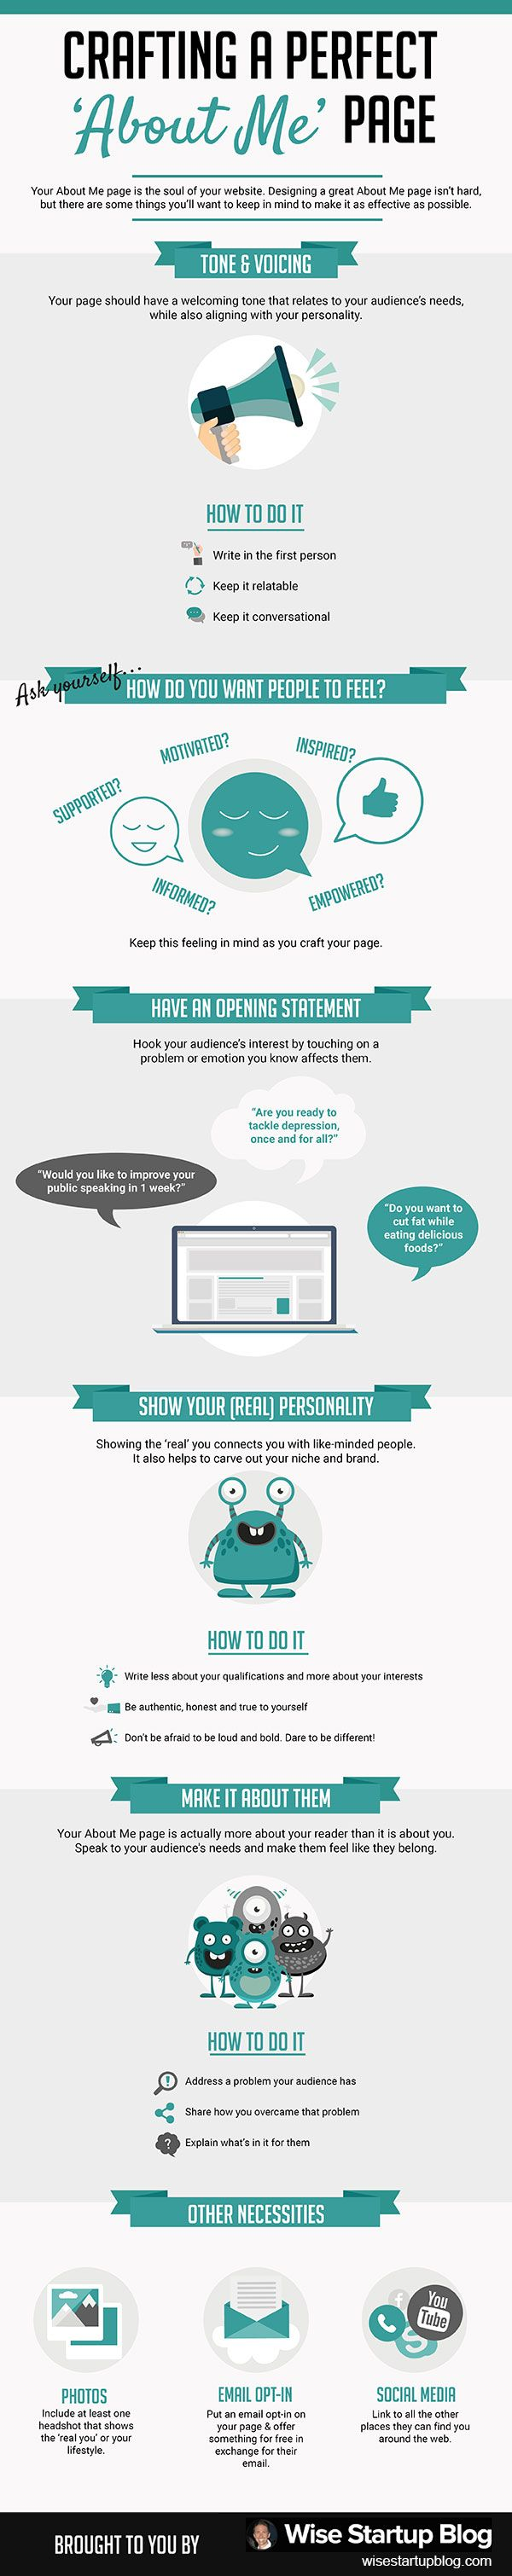 [INFOGRAPHIC] Crafting a Perfect 'About Me' Page—Tone/Voicing; Statement; Personality; Necessities; Details>